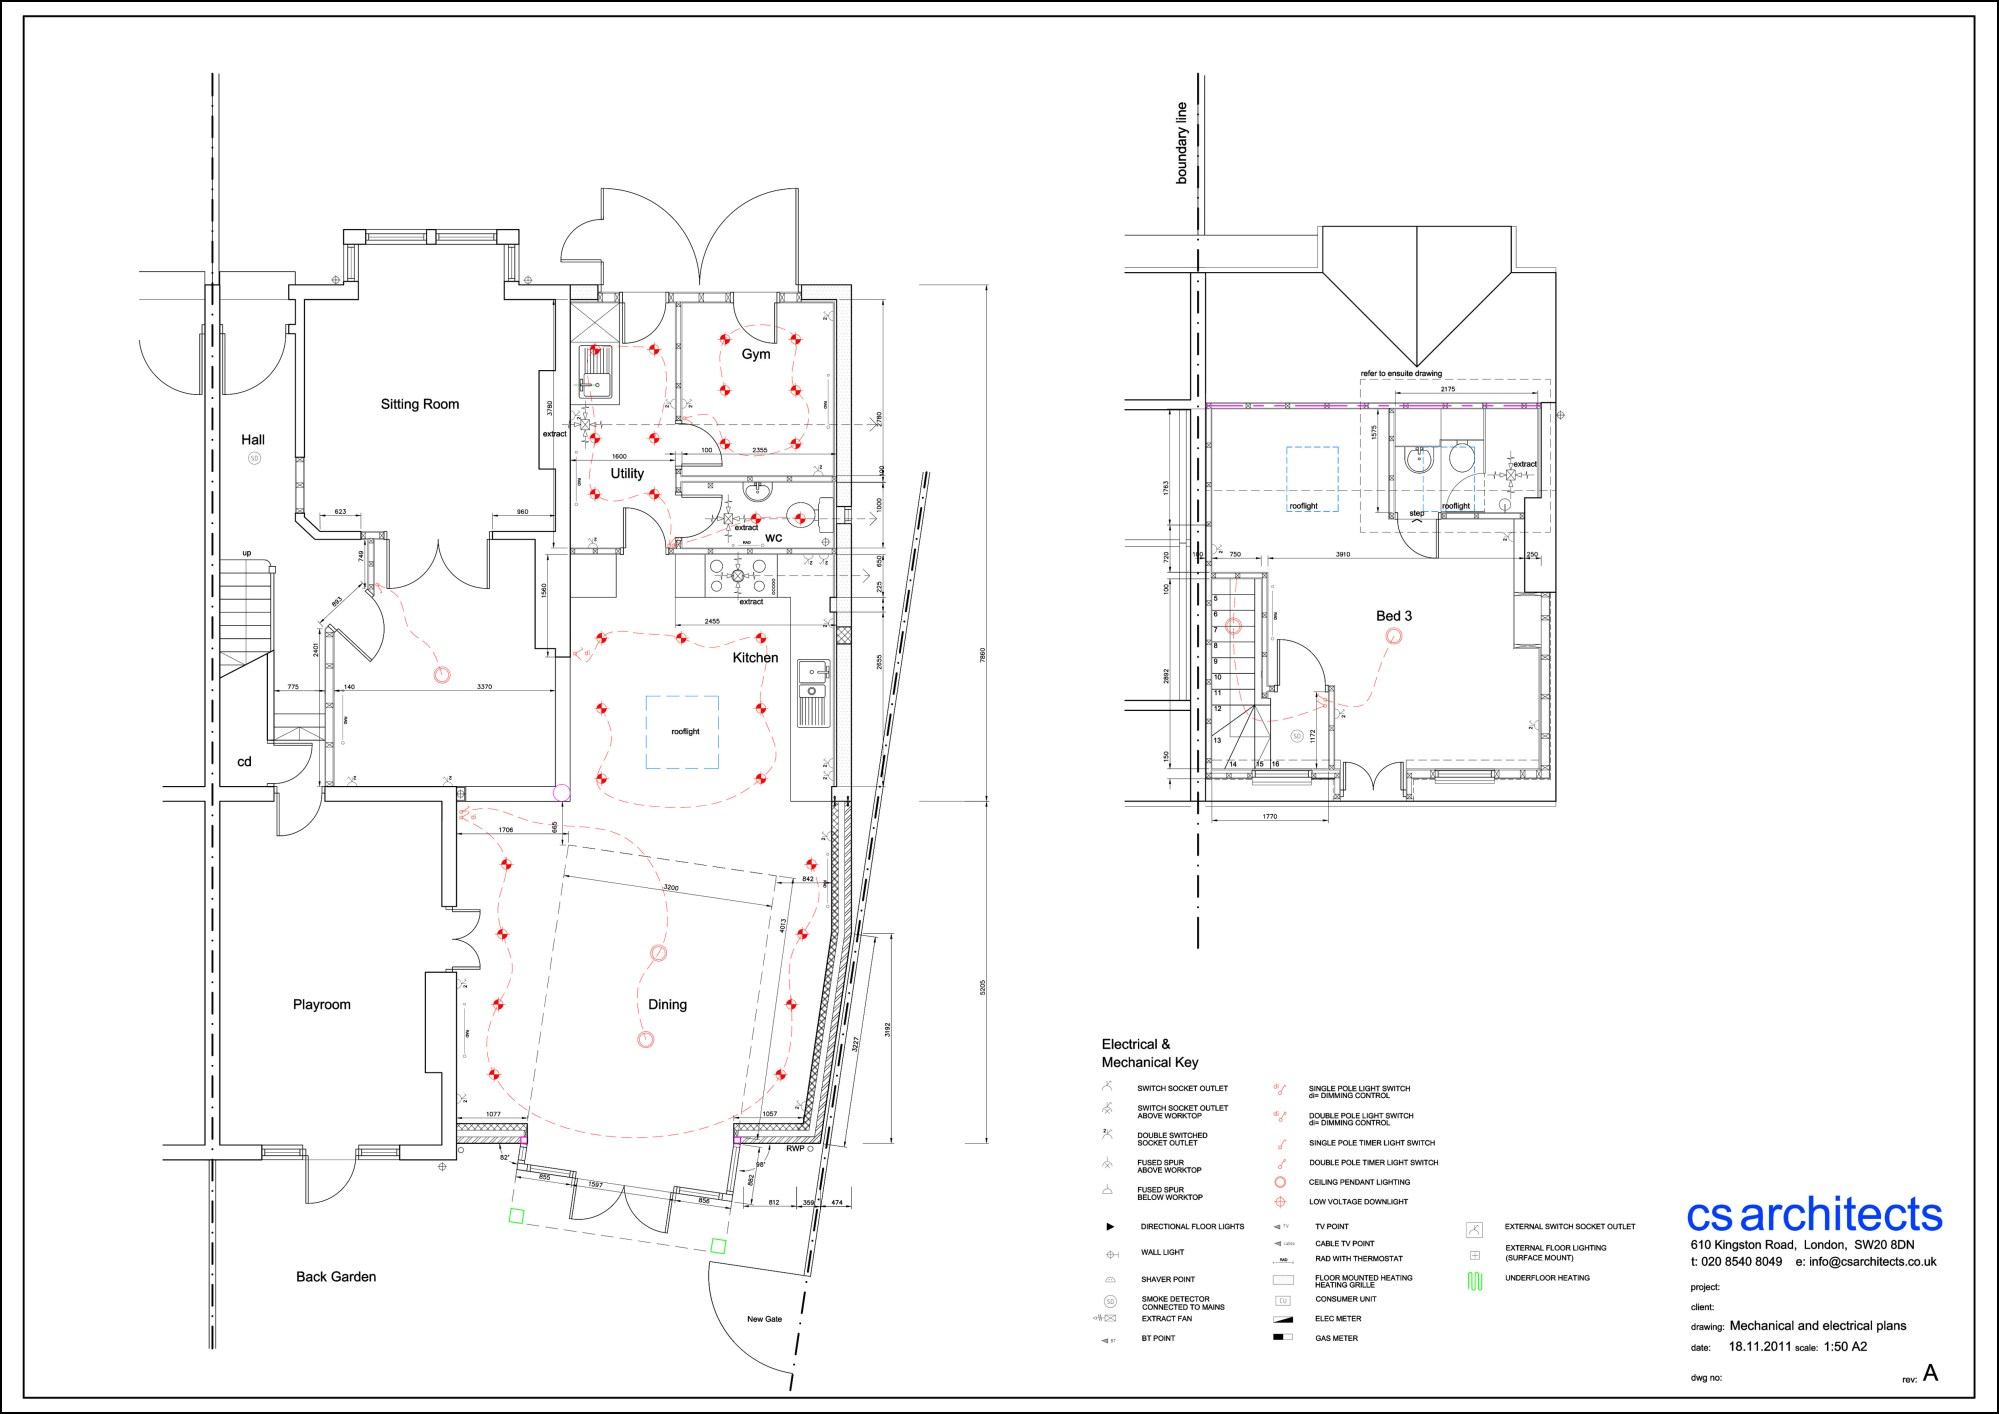 hight resolution of mechanical and electrical floor plan planning application wimbledon united kingdom